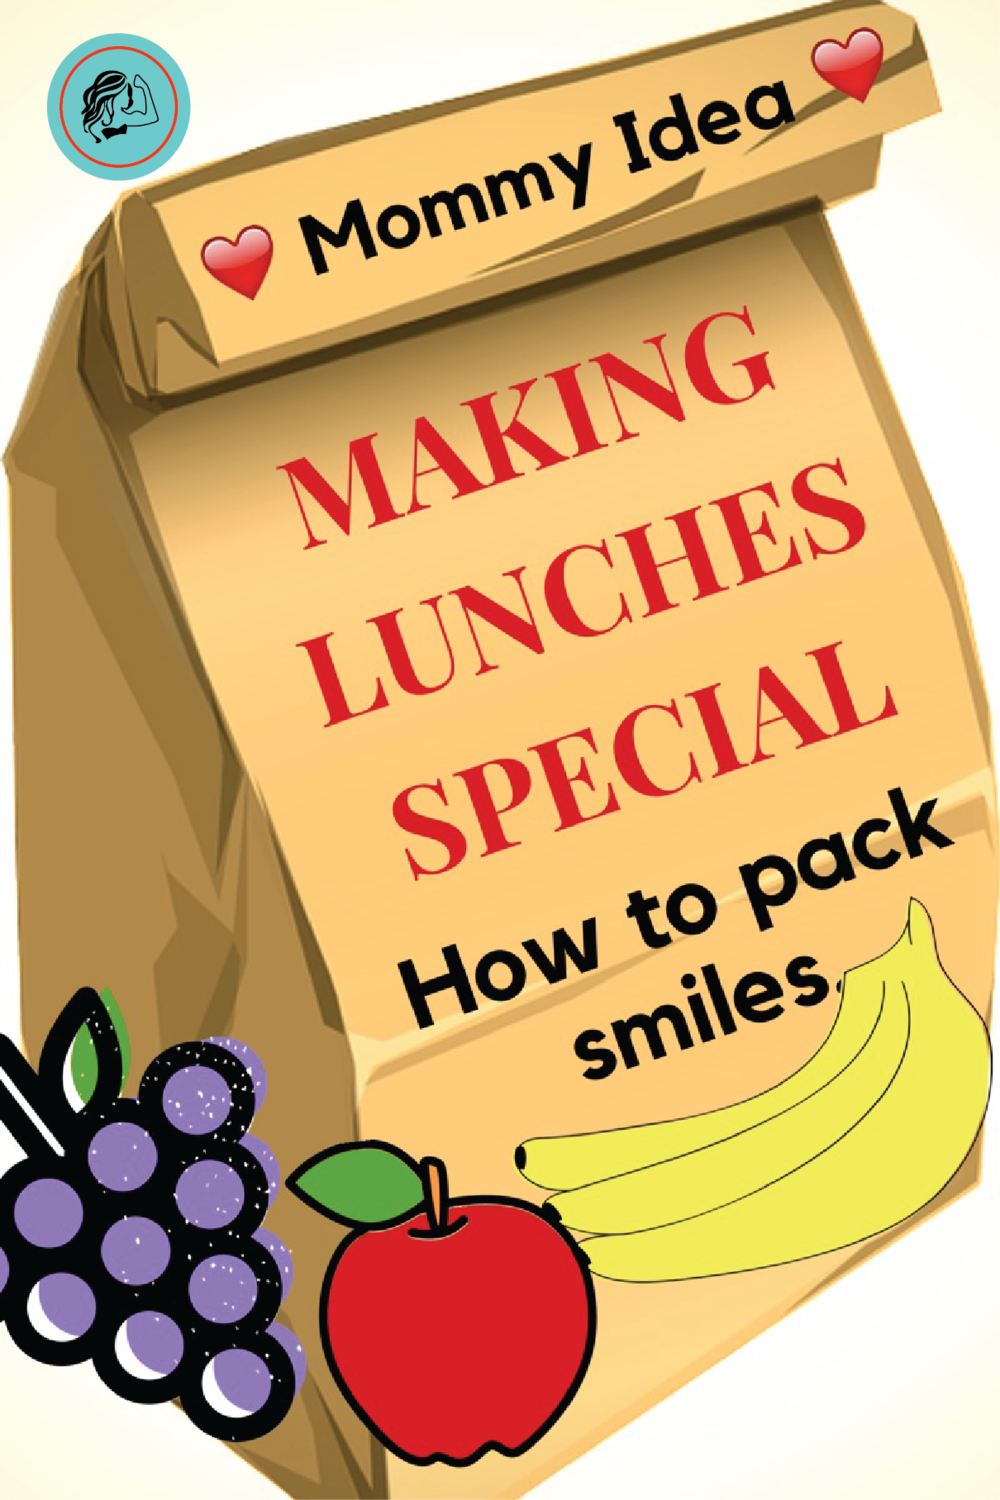 makinglunchesspecial.png